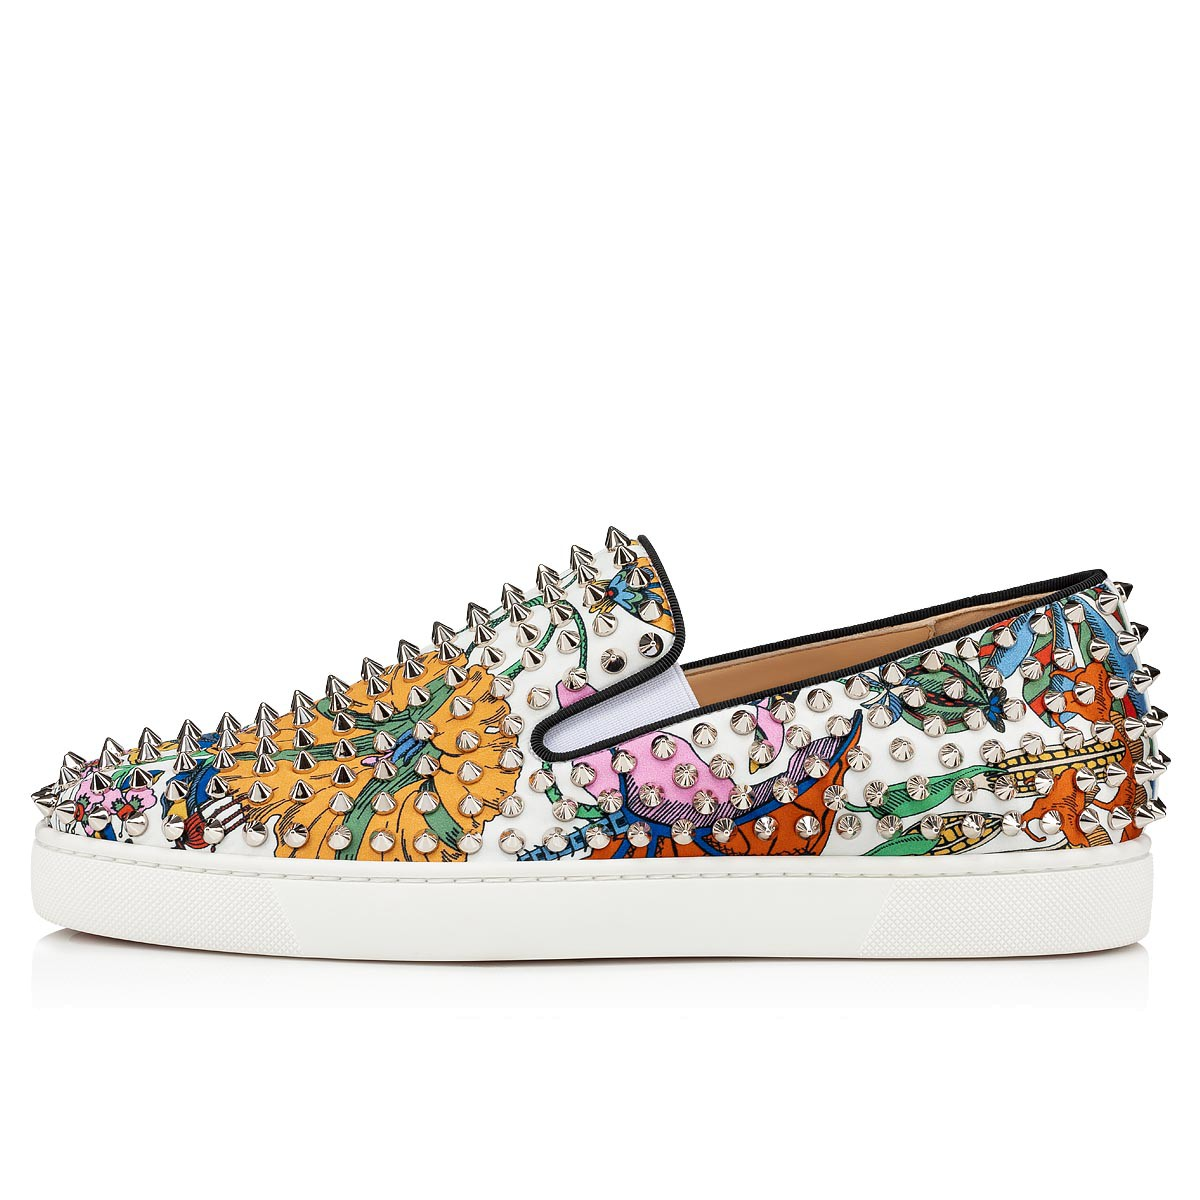 Shoes - Roller Boat - Christian Louboutin